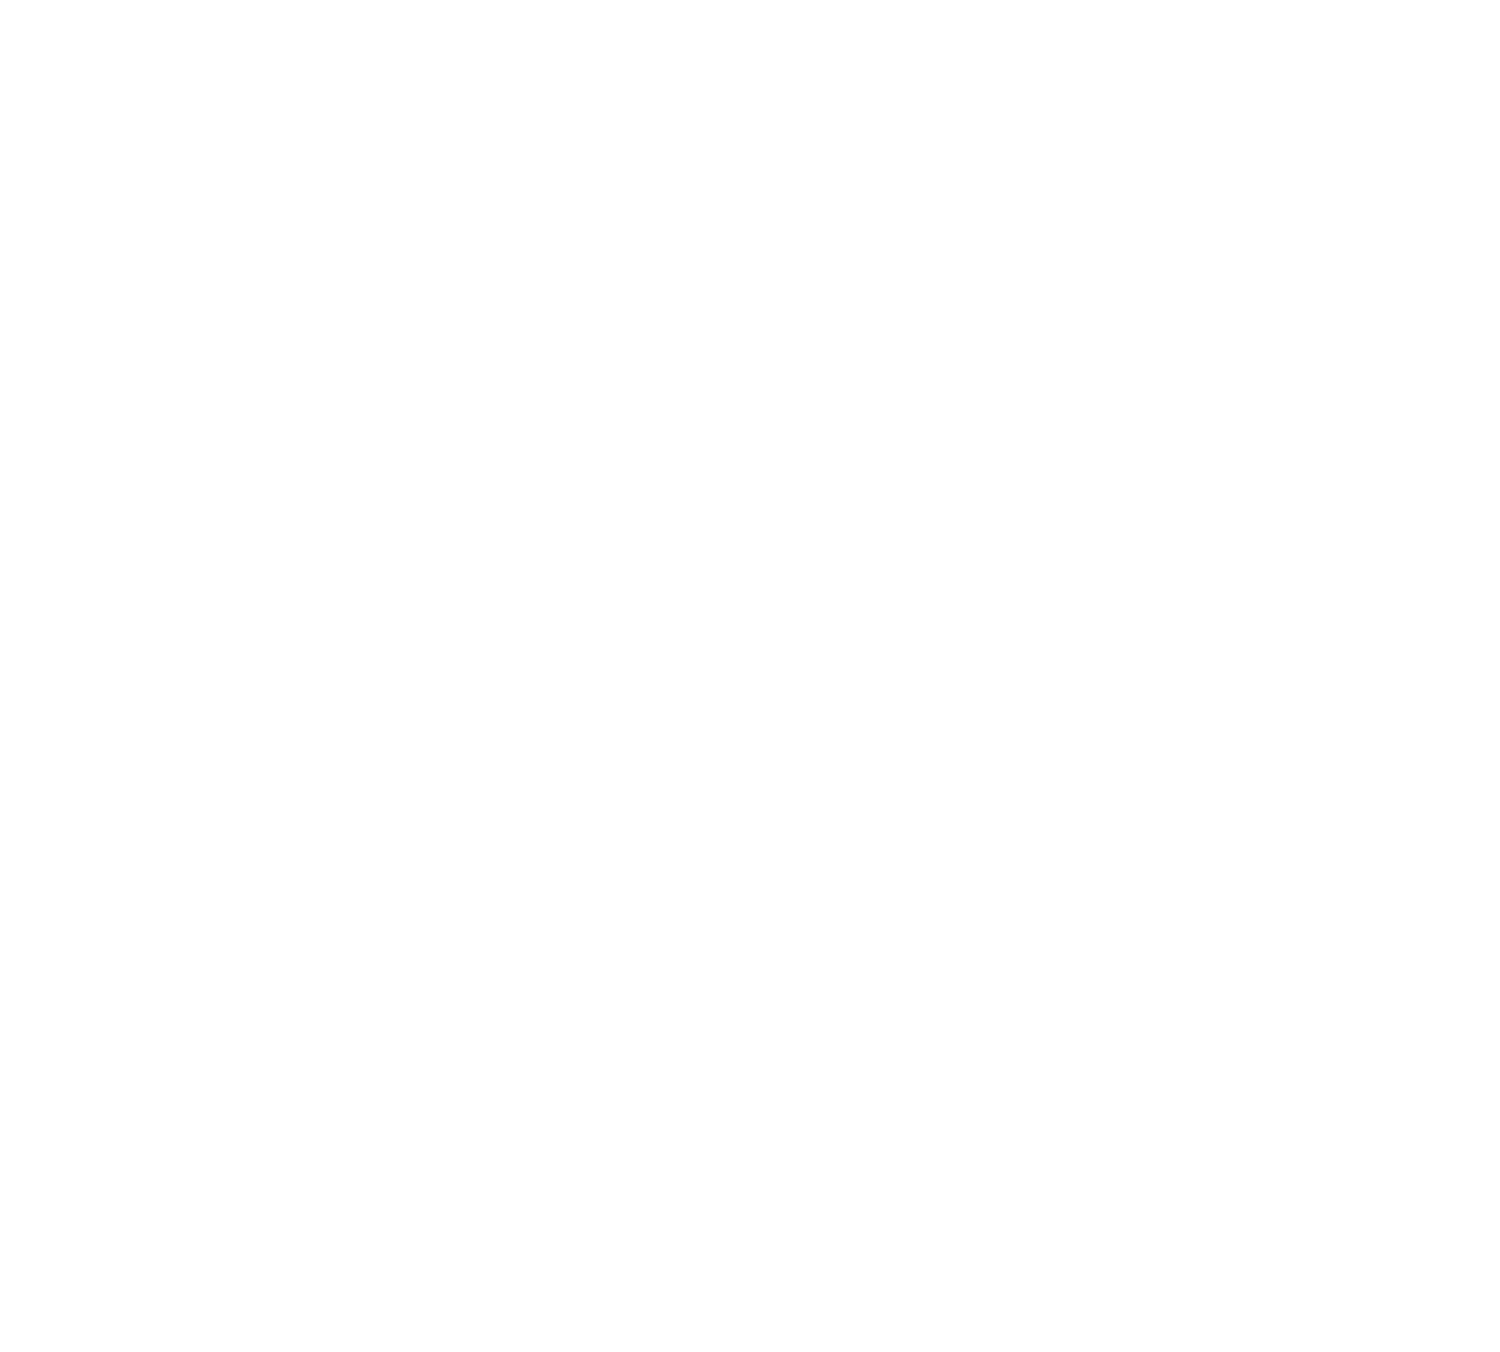 Tavern Grove Townhomes